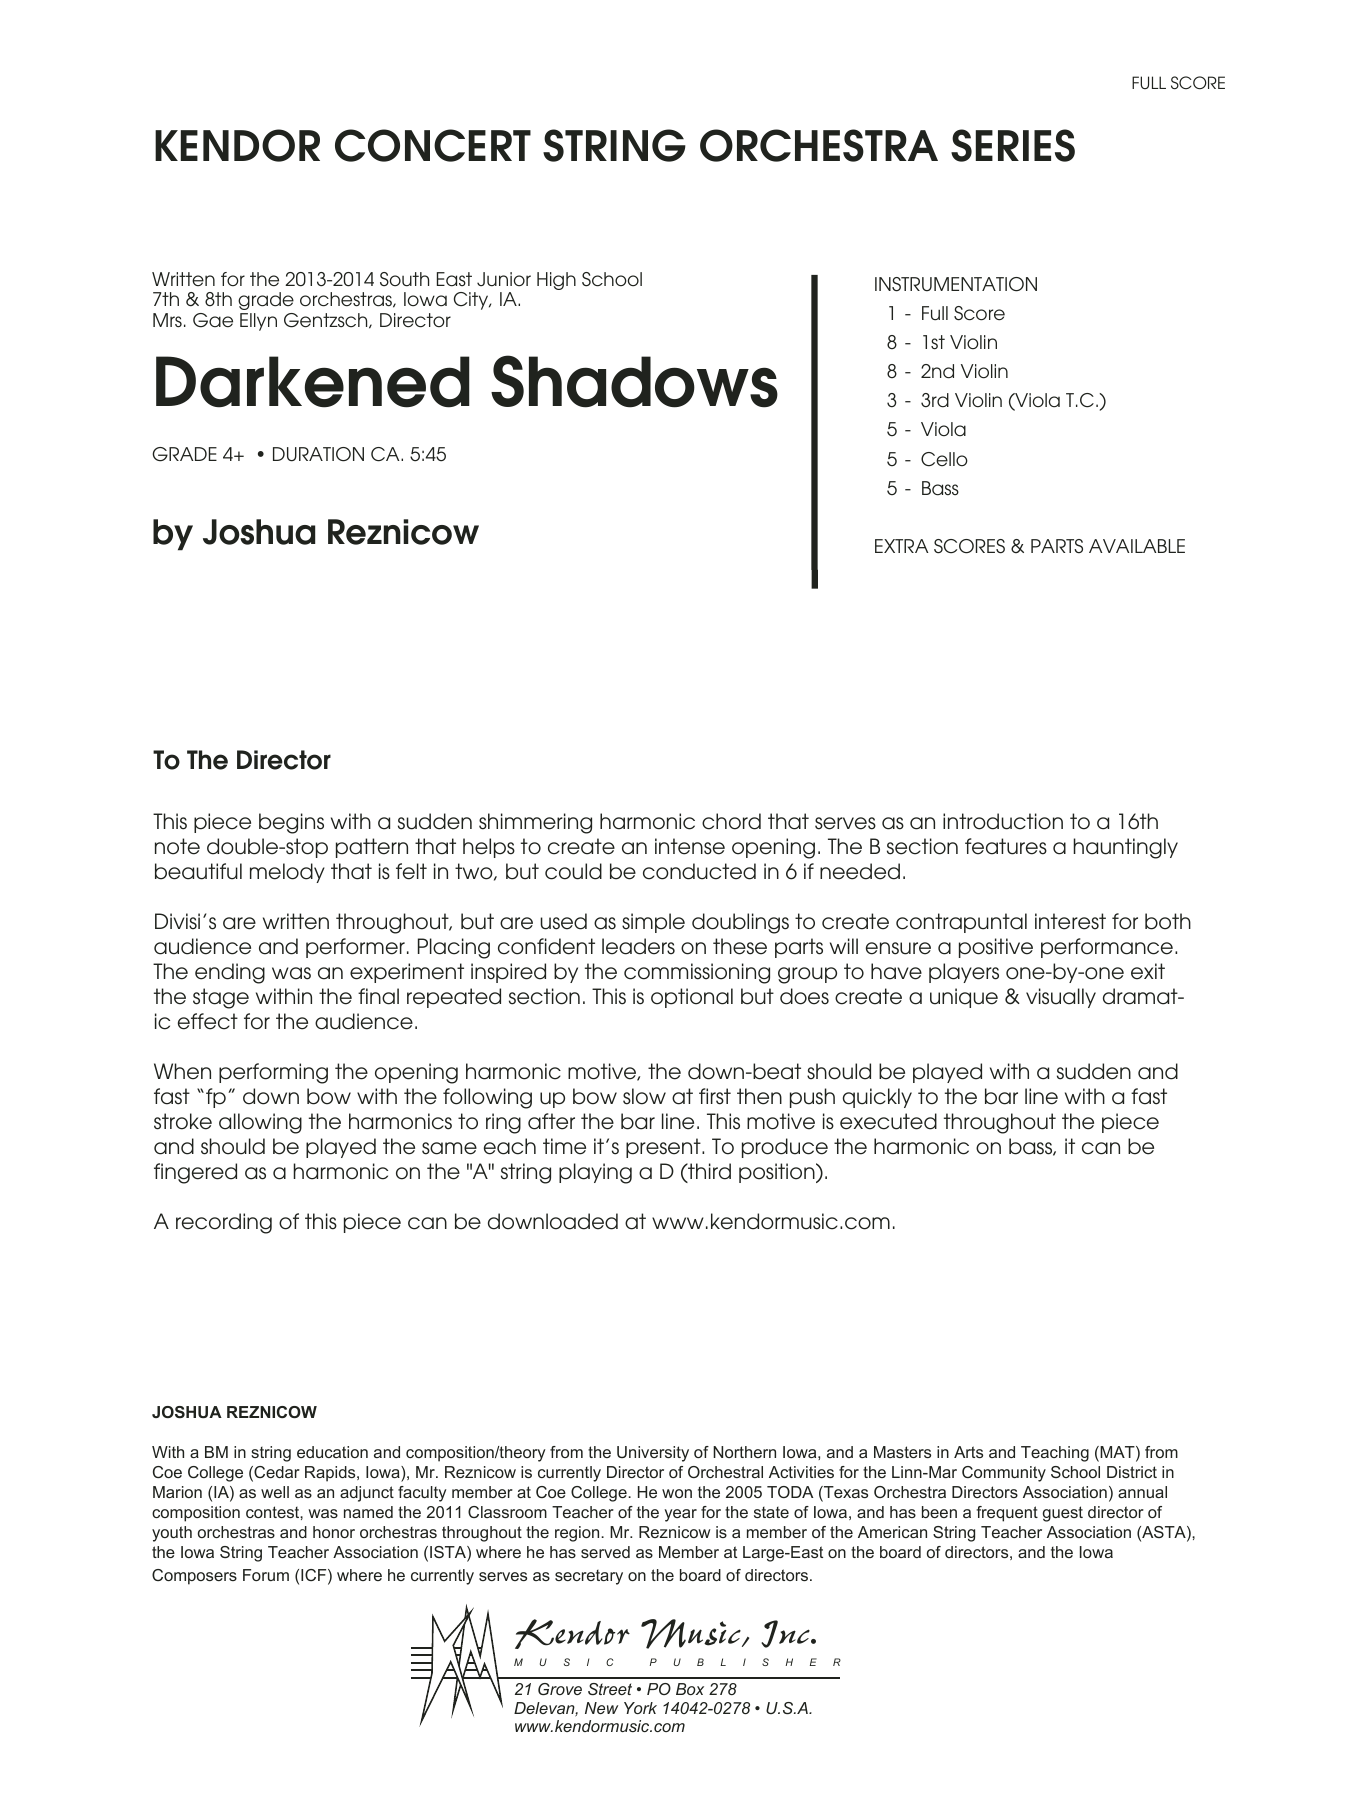 Darkened Shadows - Full Score